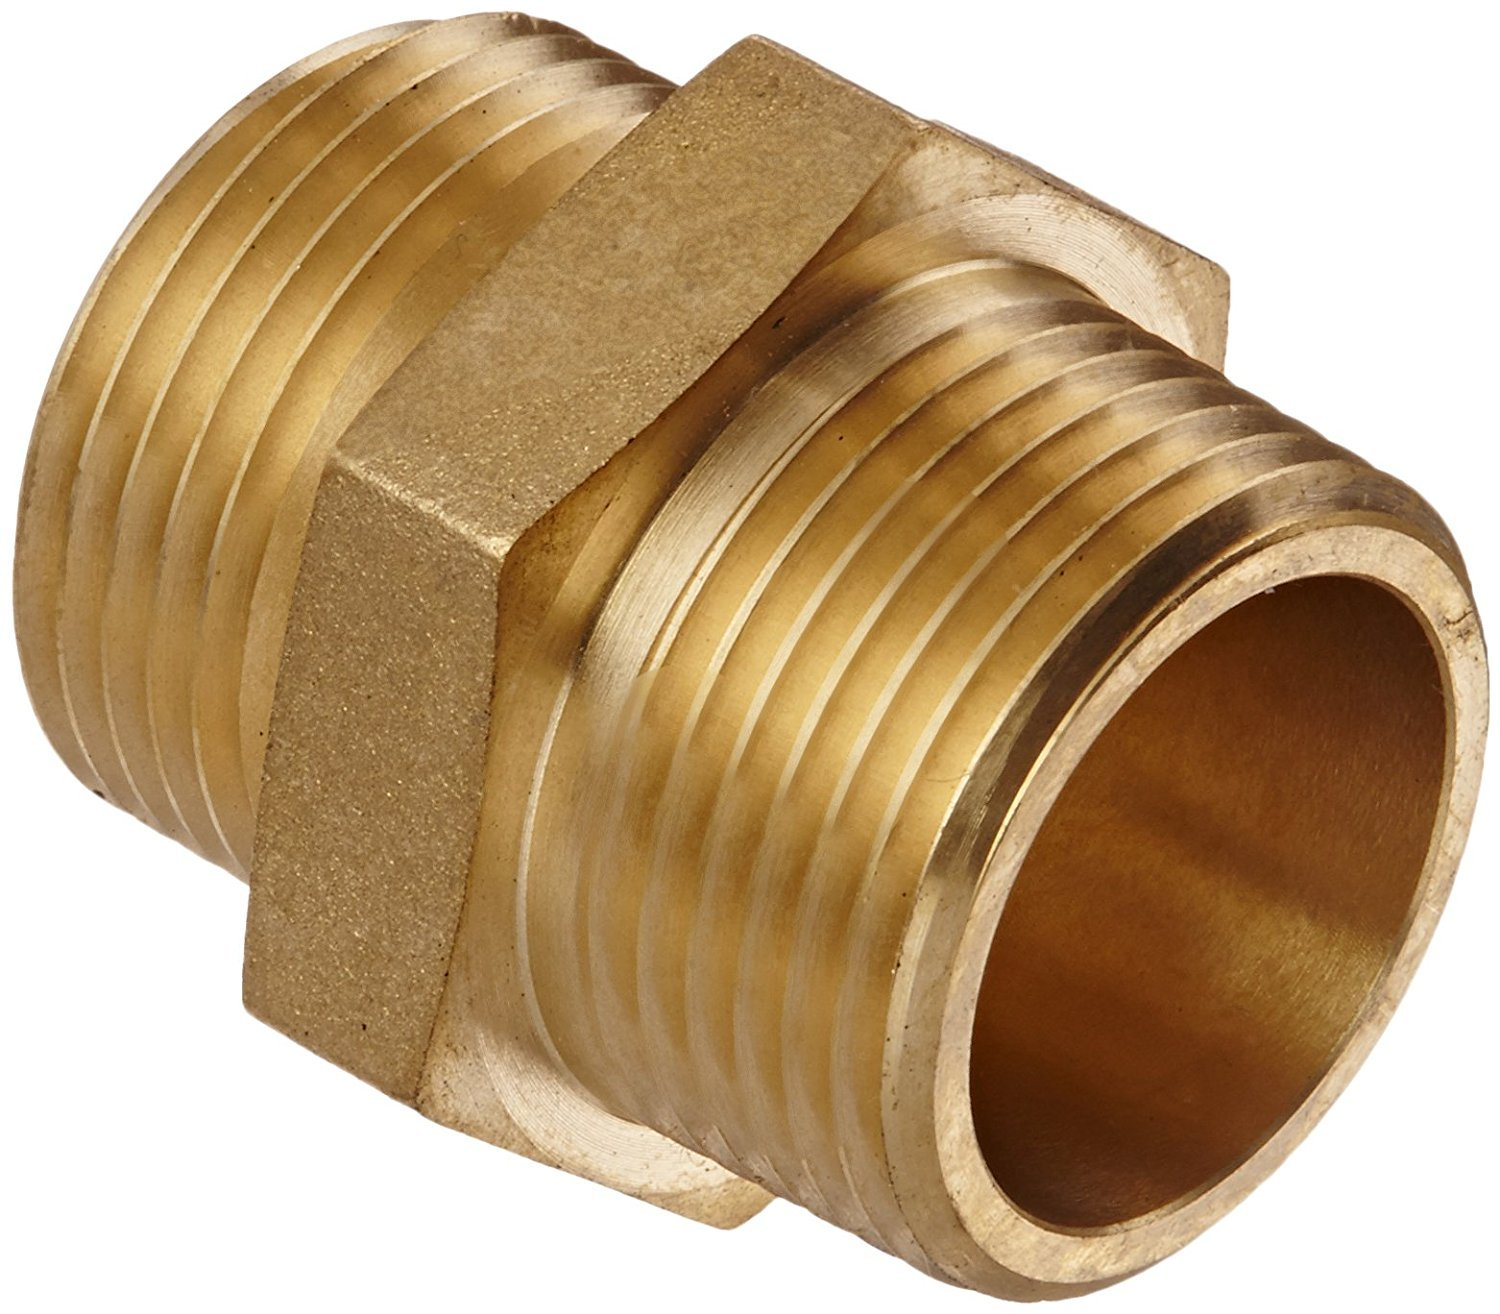 Campbell Fittings DMH1010F Double Male Hex Nipple, 1'' ID, Brass, 1'' NPT x 1'' NST by Campbell Fittings